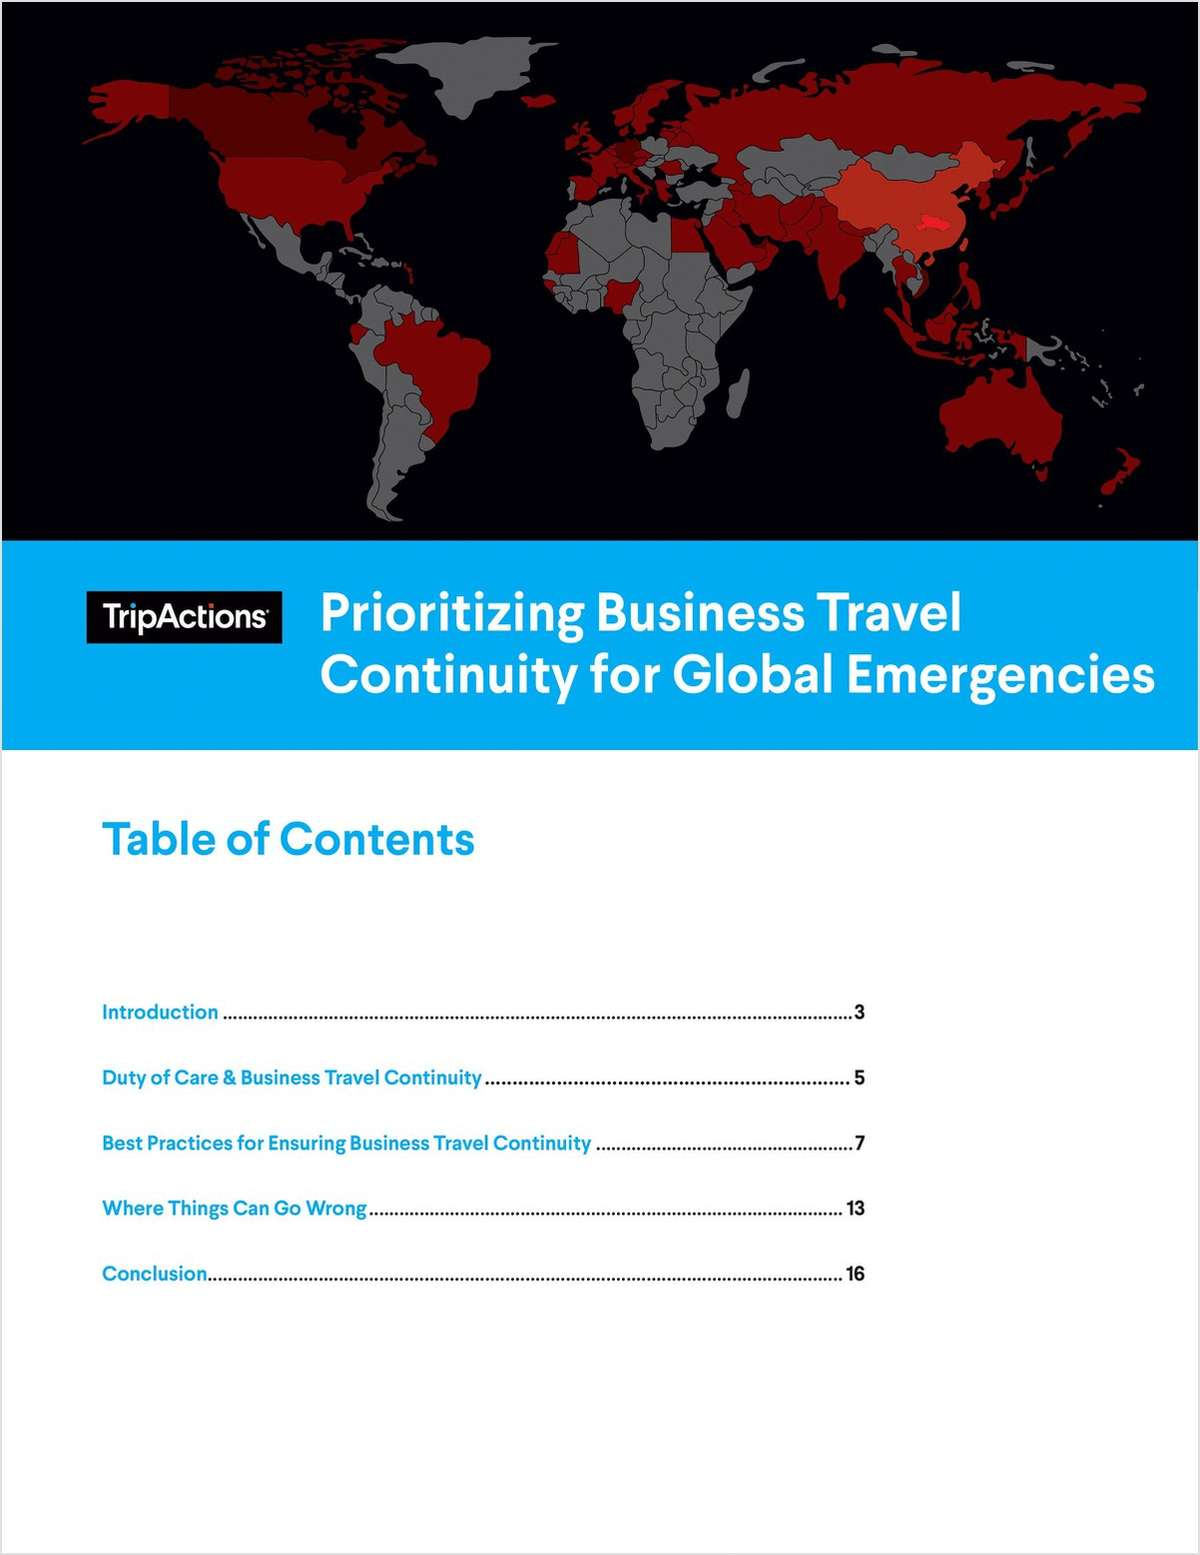 Prioritizing Business Travel Continuity for Global Emergencies